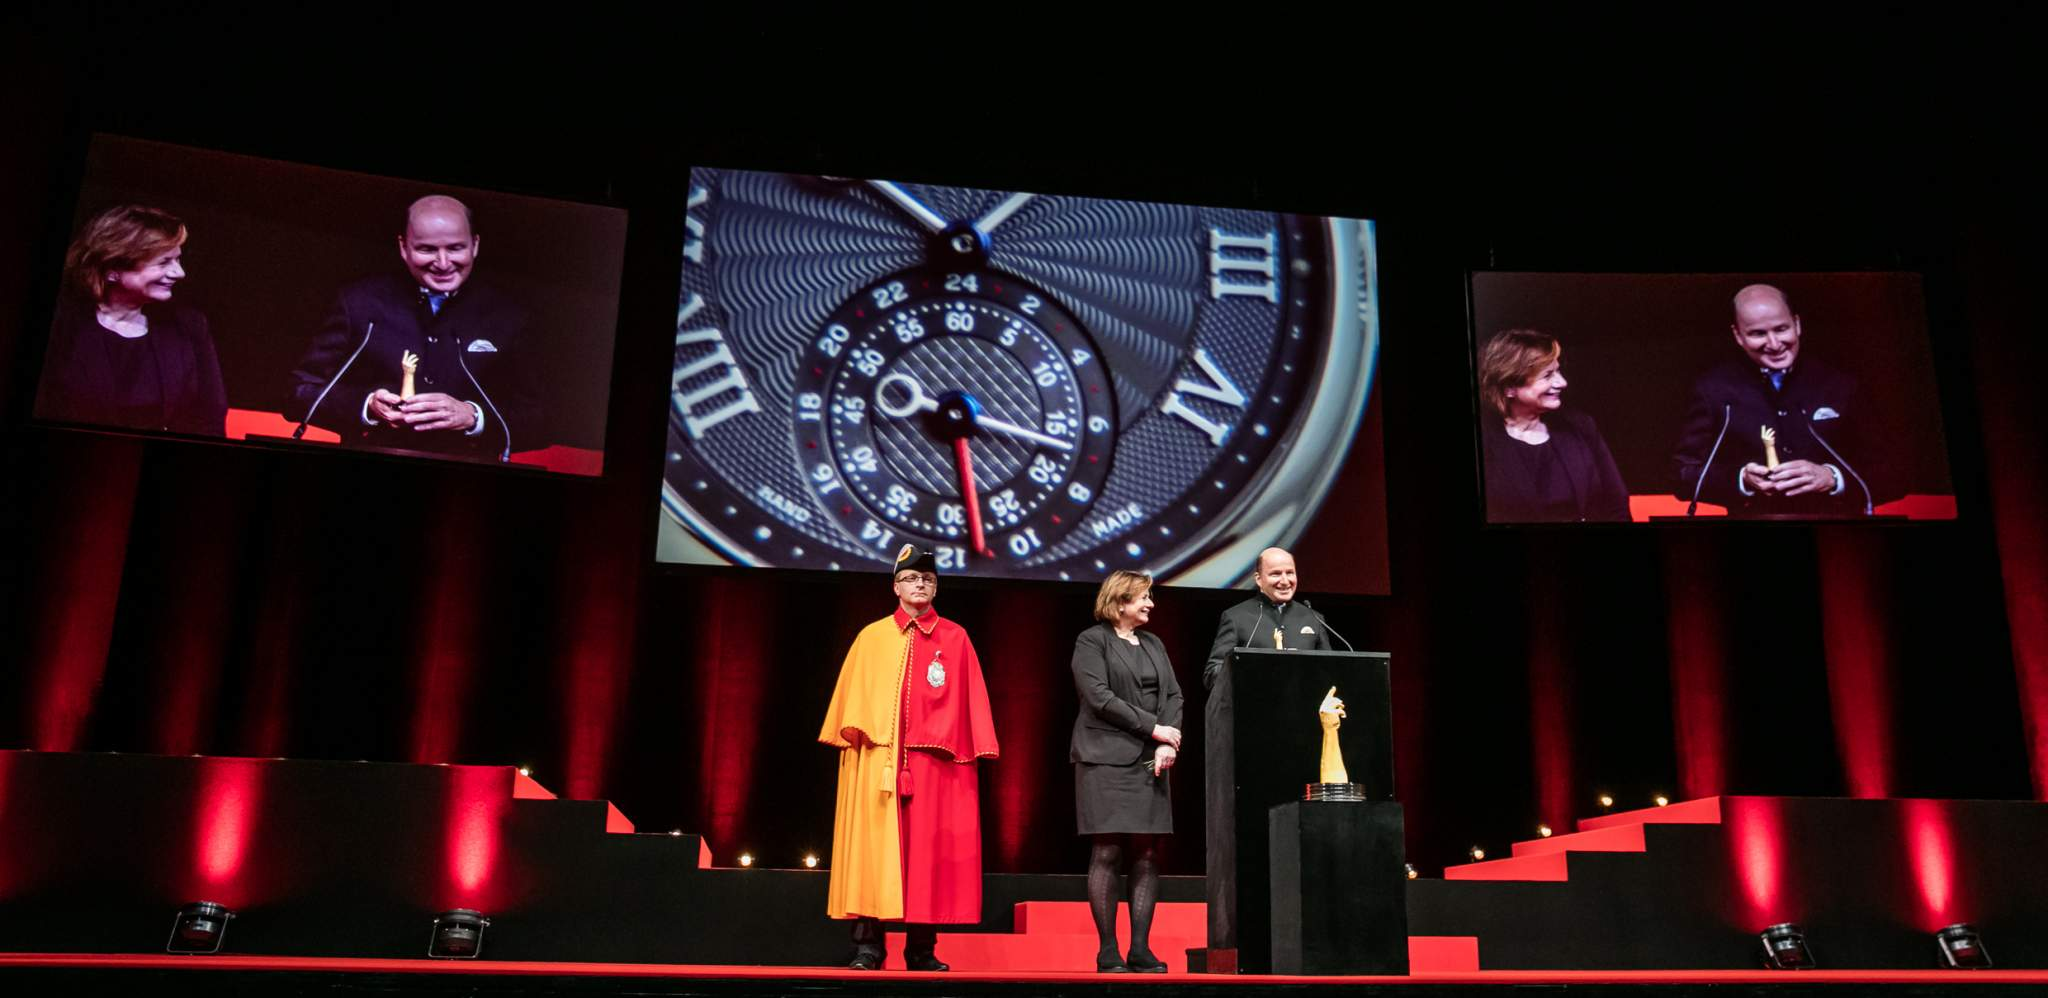 Kari Voutilainen (Founder of Voutilainen, winner of the Men's Watch Prize 2015), with Esther Alder (Mayor of the City of Geneva)